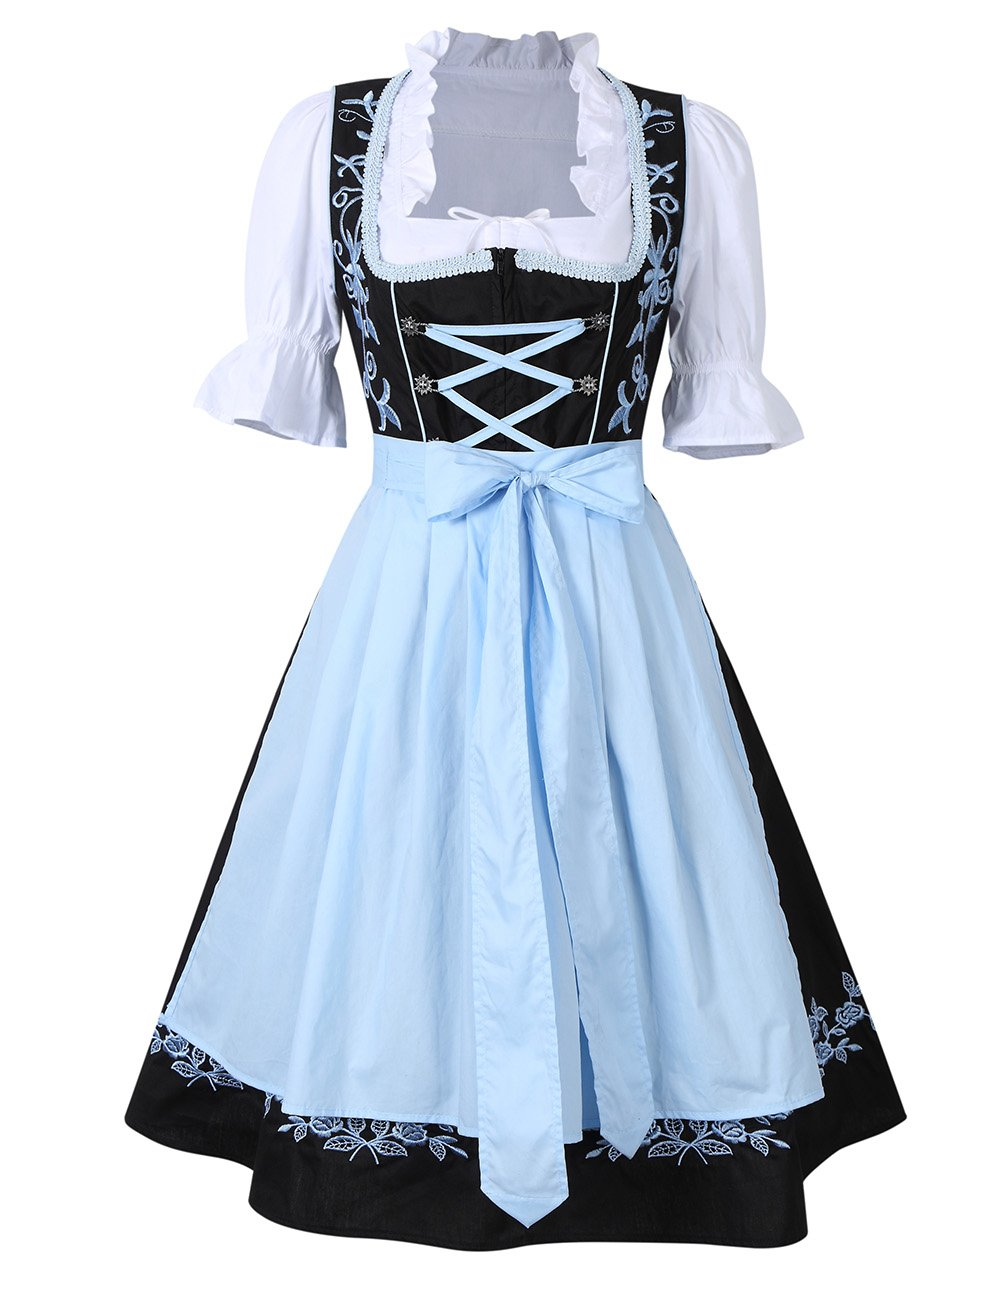 GloryStar KoJooin Women's 3 Pieces Costumes Embroidery Oktoberfest Dirndl Dress Black-Blue 38